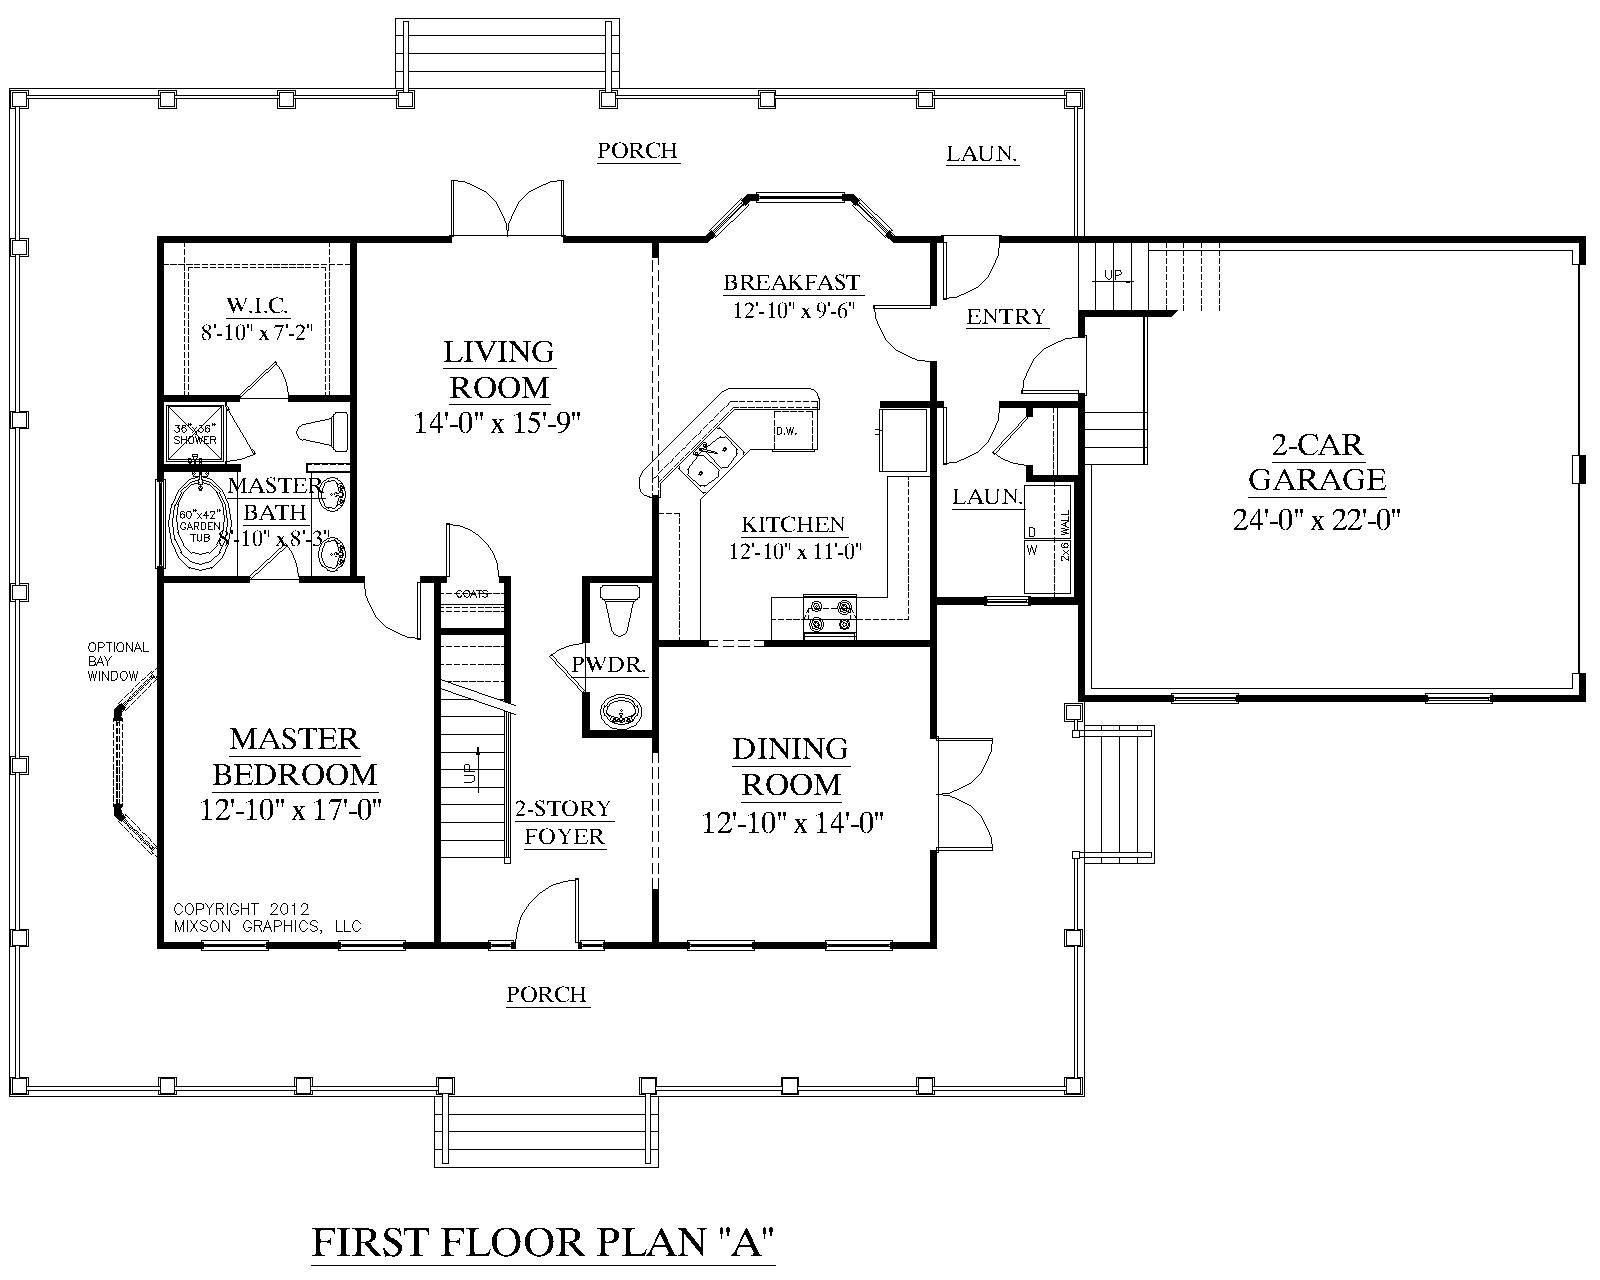 House Plan 2341 A MONTGOMERY A first floor plan Traditional 1 1